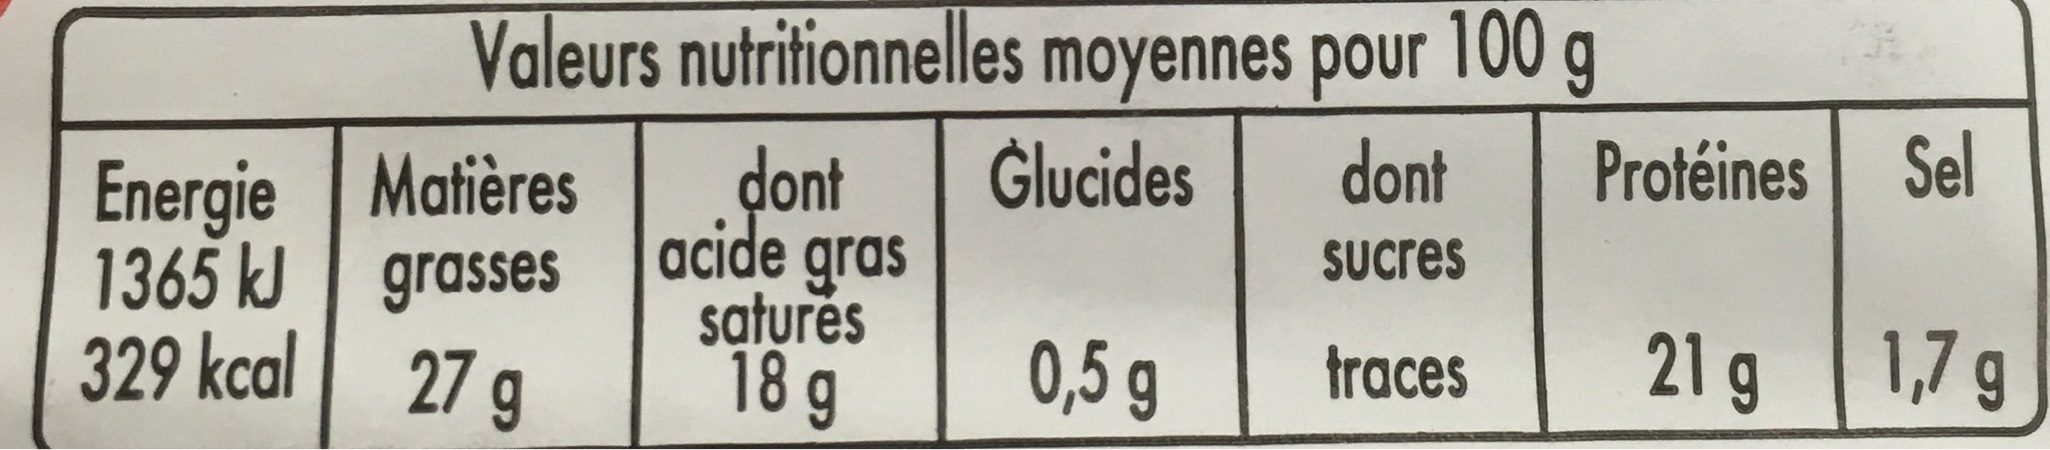 1 / 2 Reblochon Fruit.lc - Nutrition facts - fr